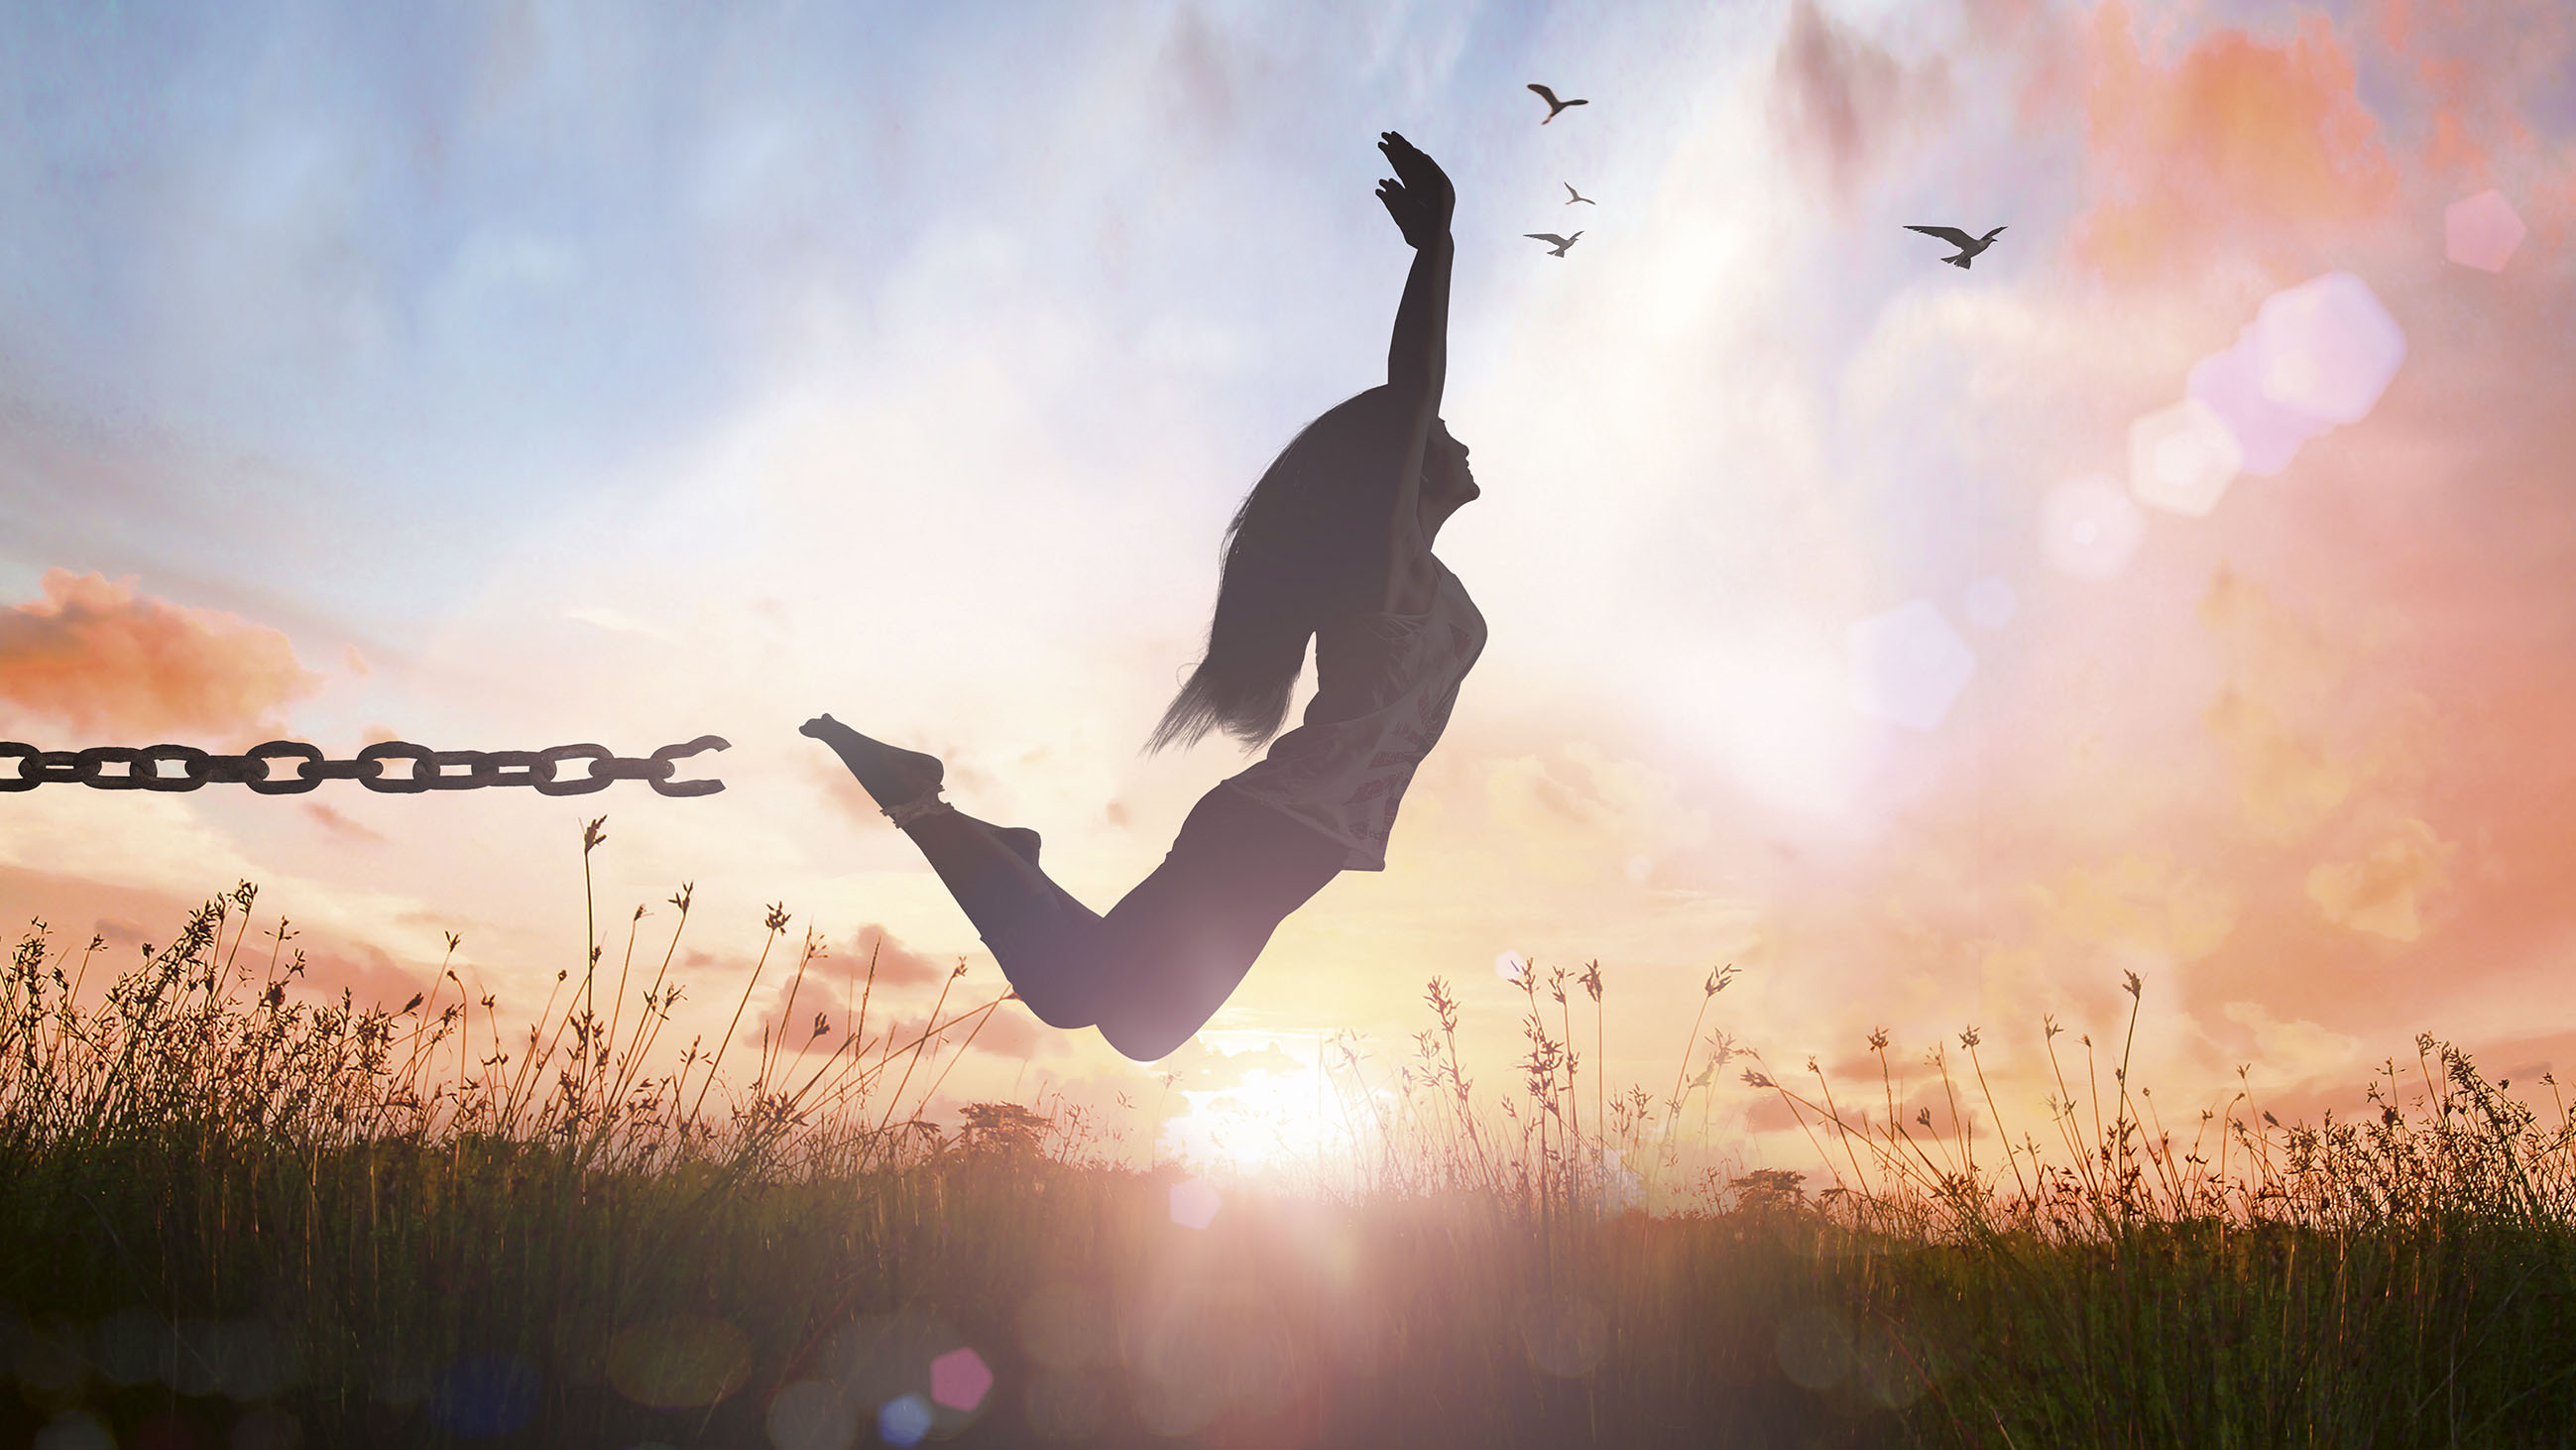 World environment day concept: Silhouette of a girl jumping and